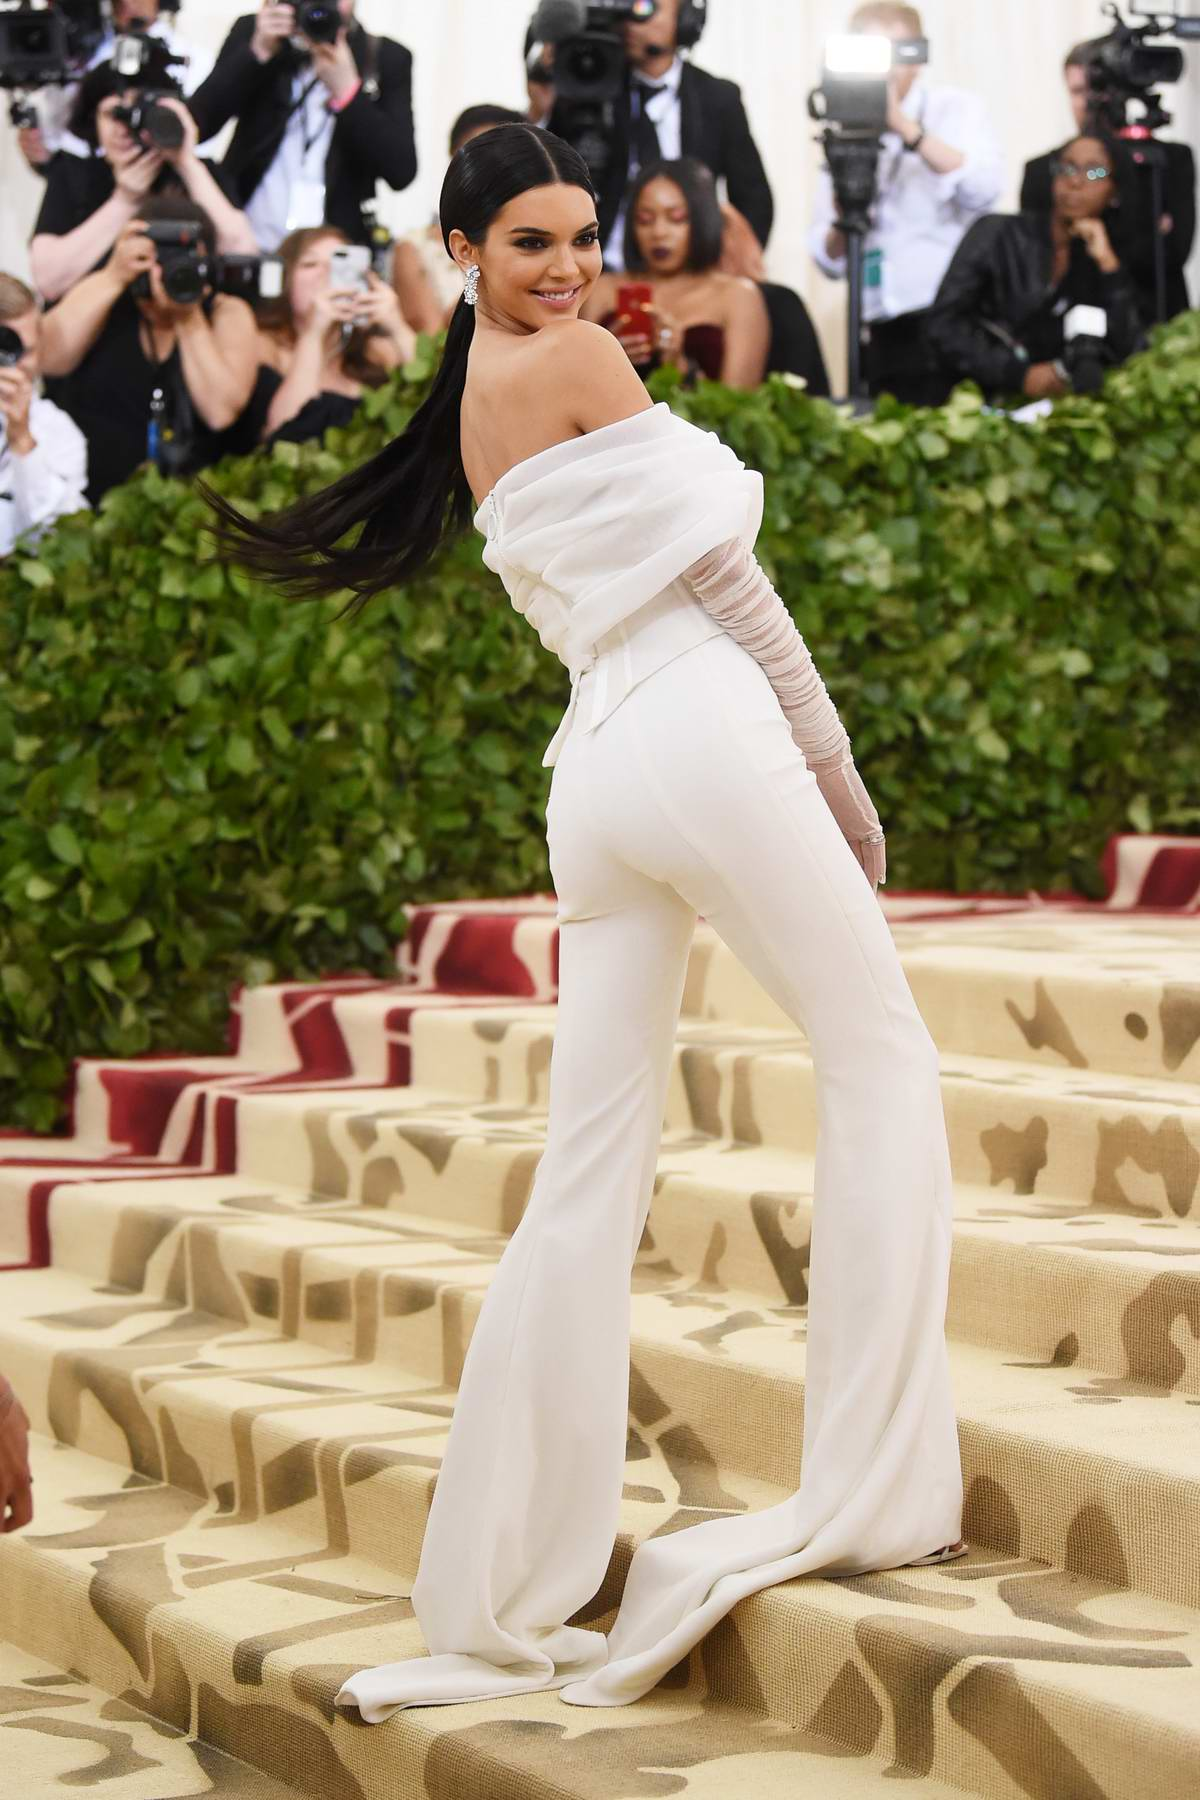 Kendall Jenner attends The Costume Institute Benefit Gala (MET Gala 2018) at Metropolitan Museum of Art in New York City